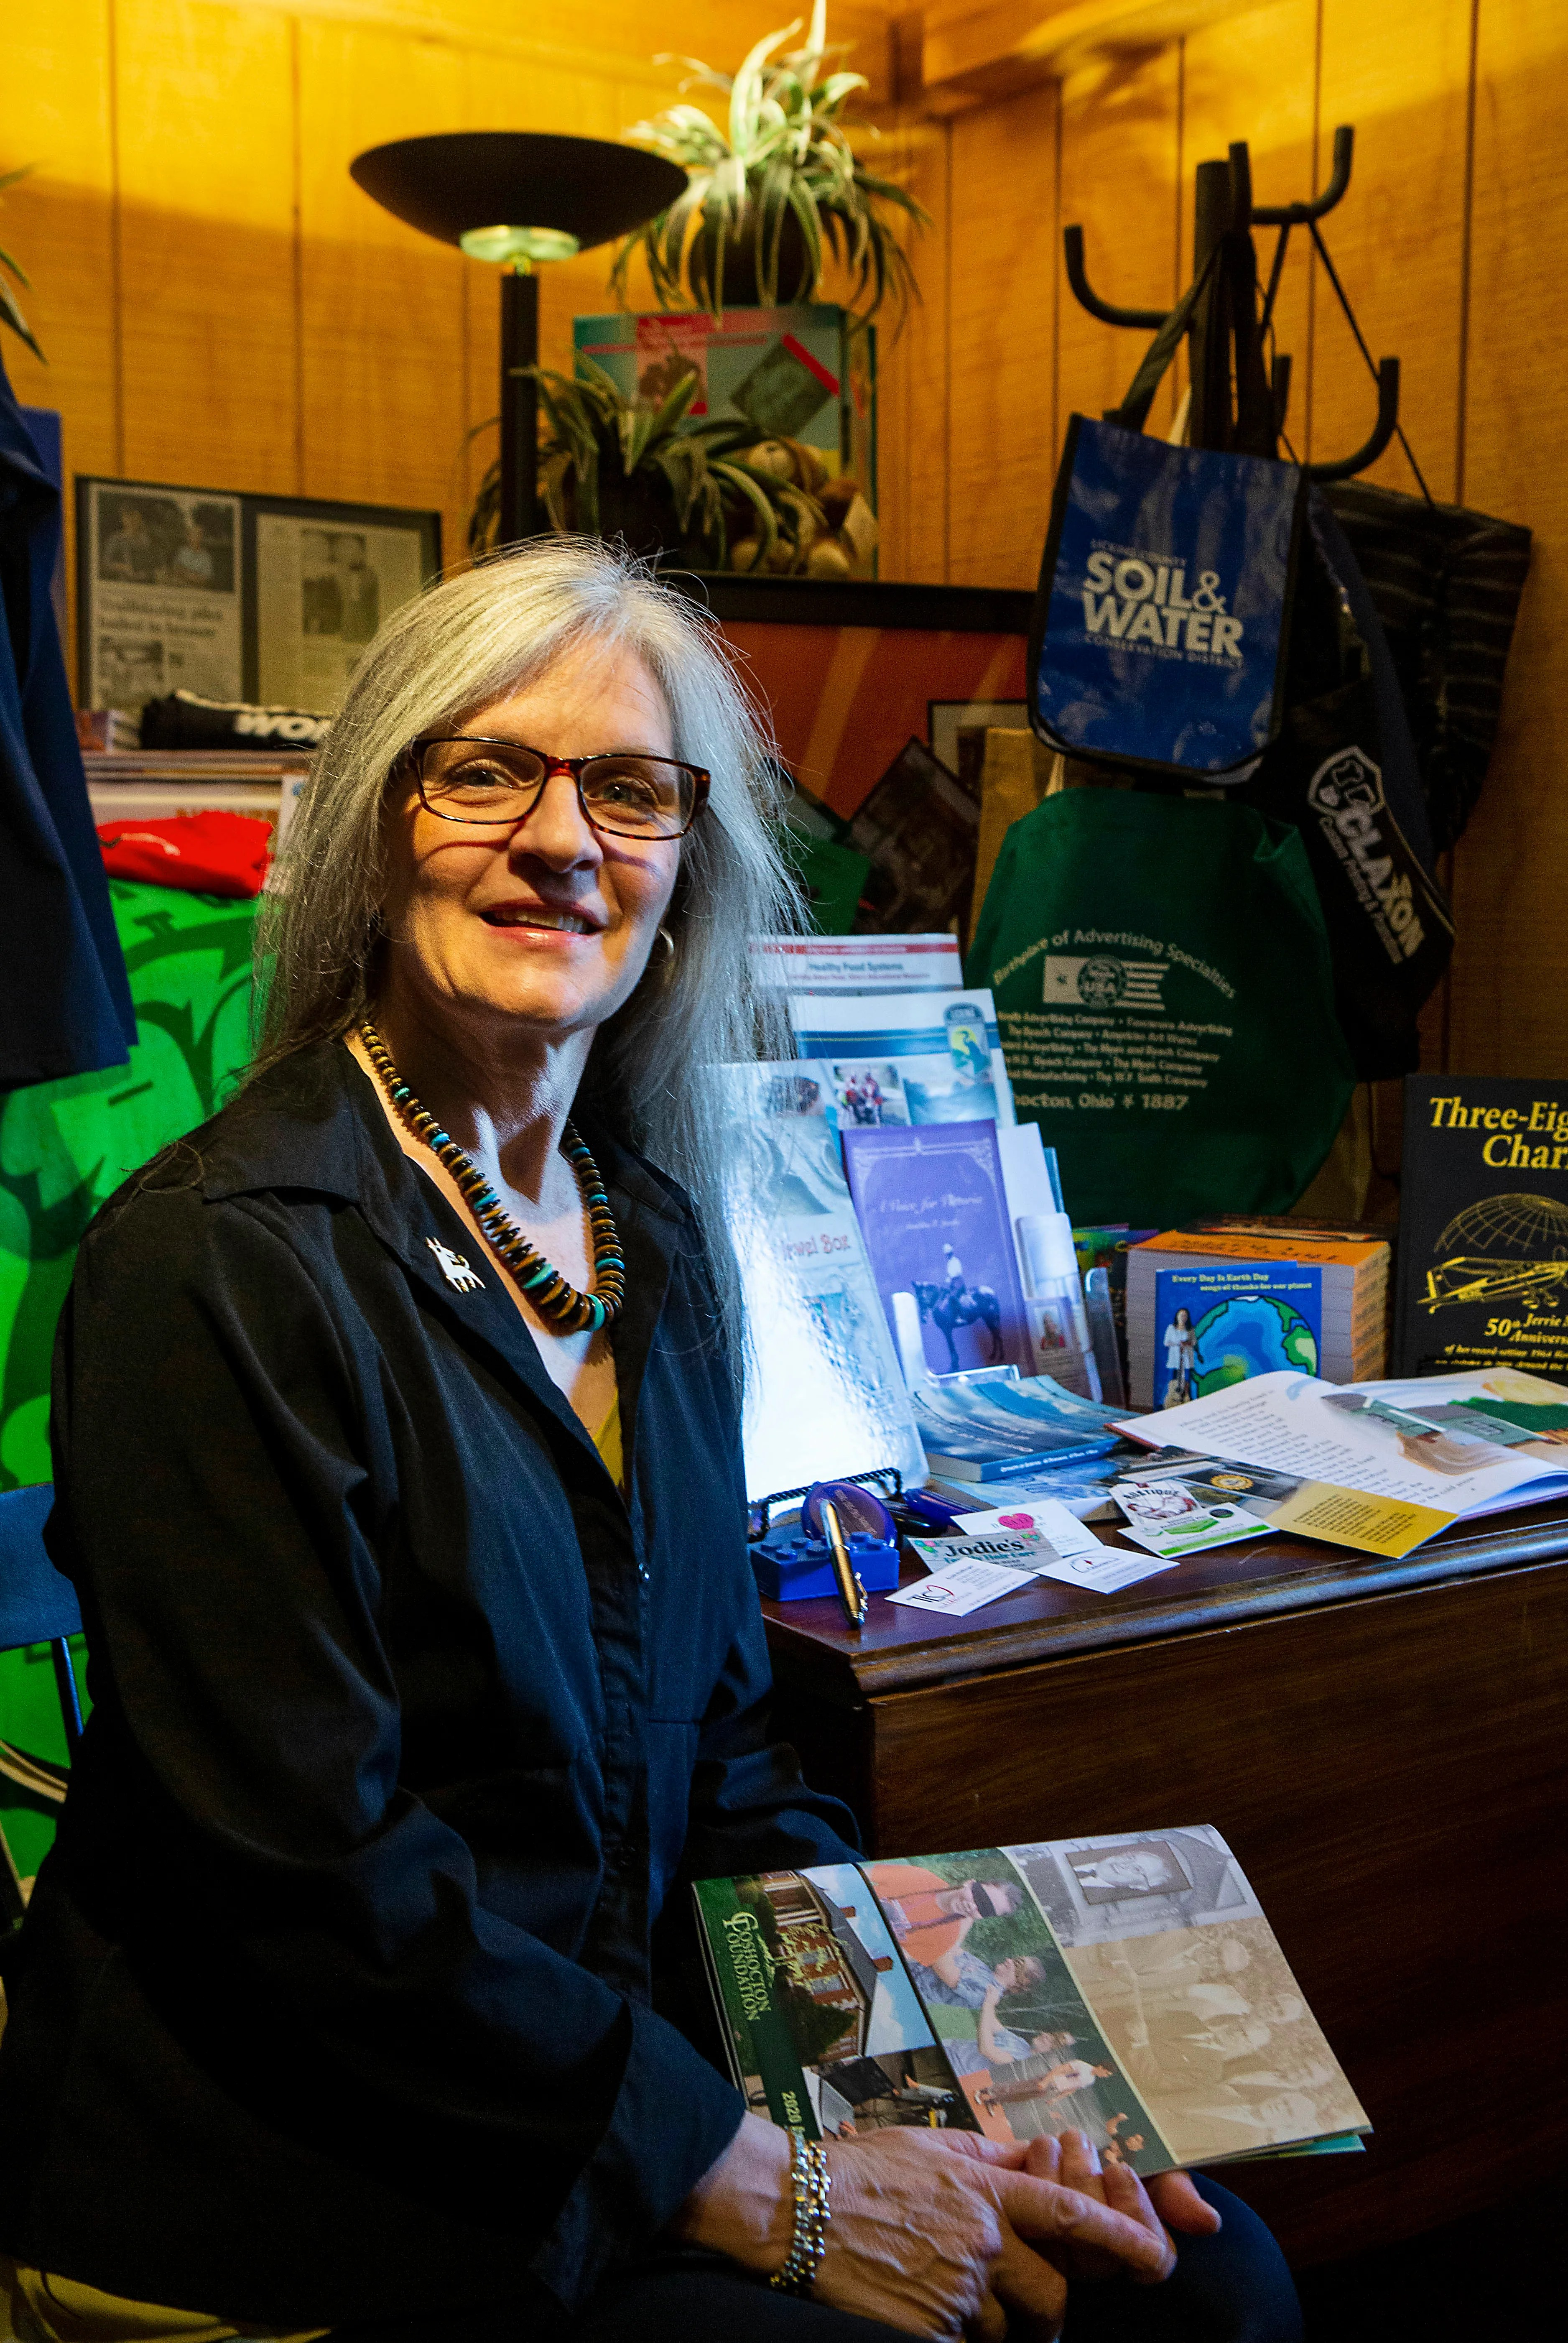 Wendy Hollinger, of Phoenix Graphix, sits by a some of the published books and other marketing and communications materials displayed at Phoenix Graphix in Granville, Ohio on June 14, 2021.